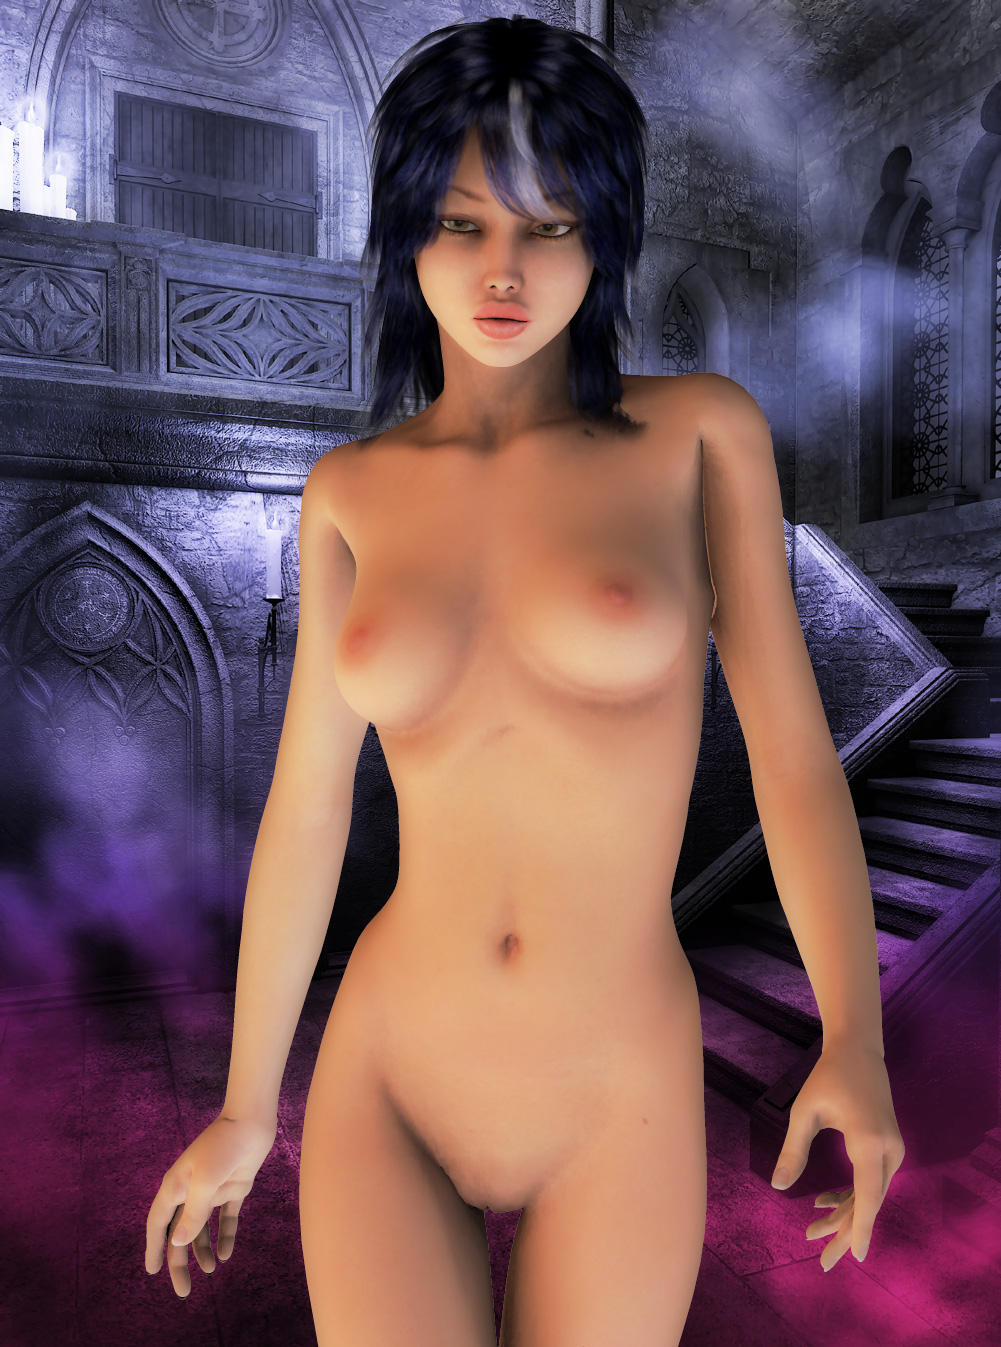 World os pornocraft elf 3d sexy image